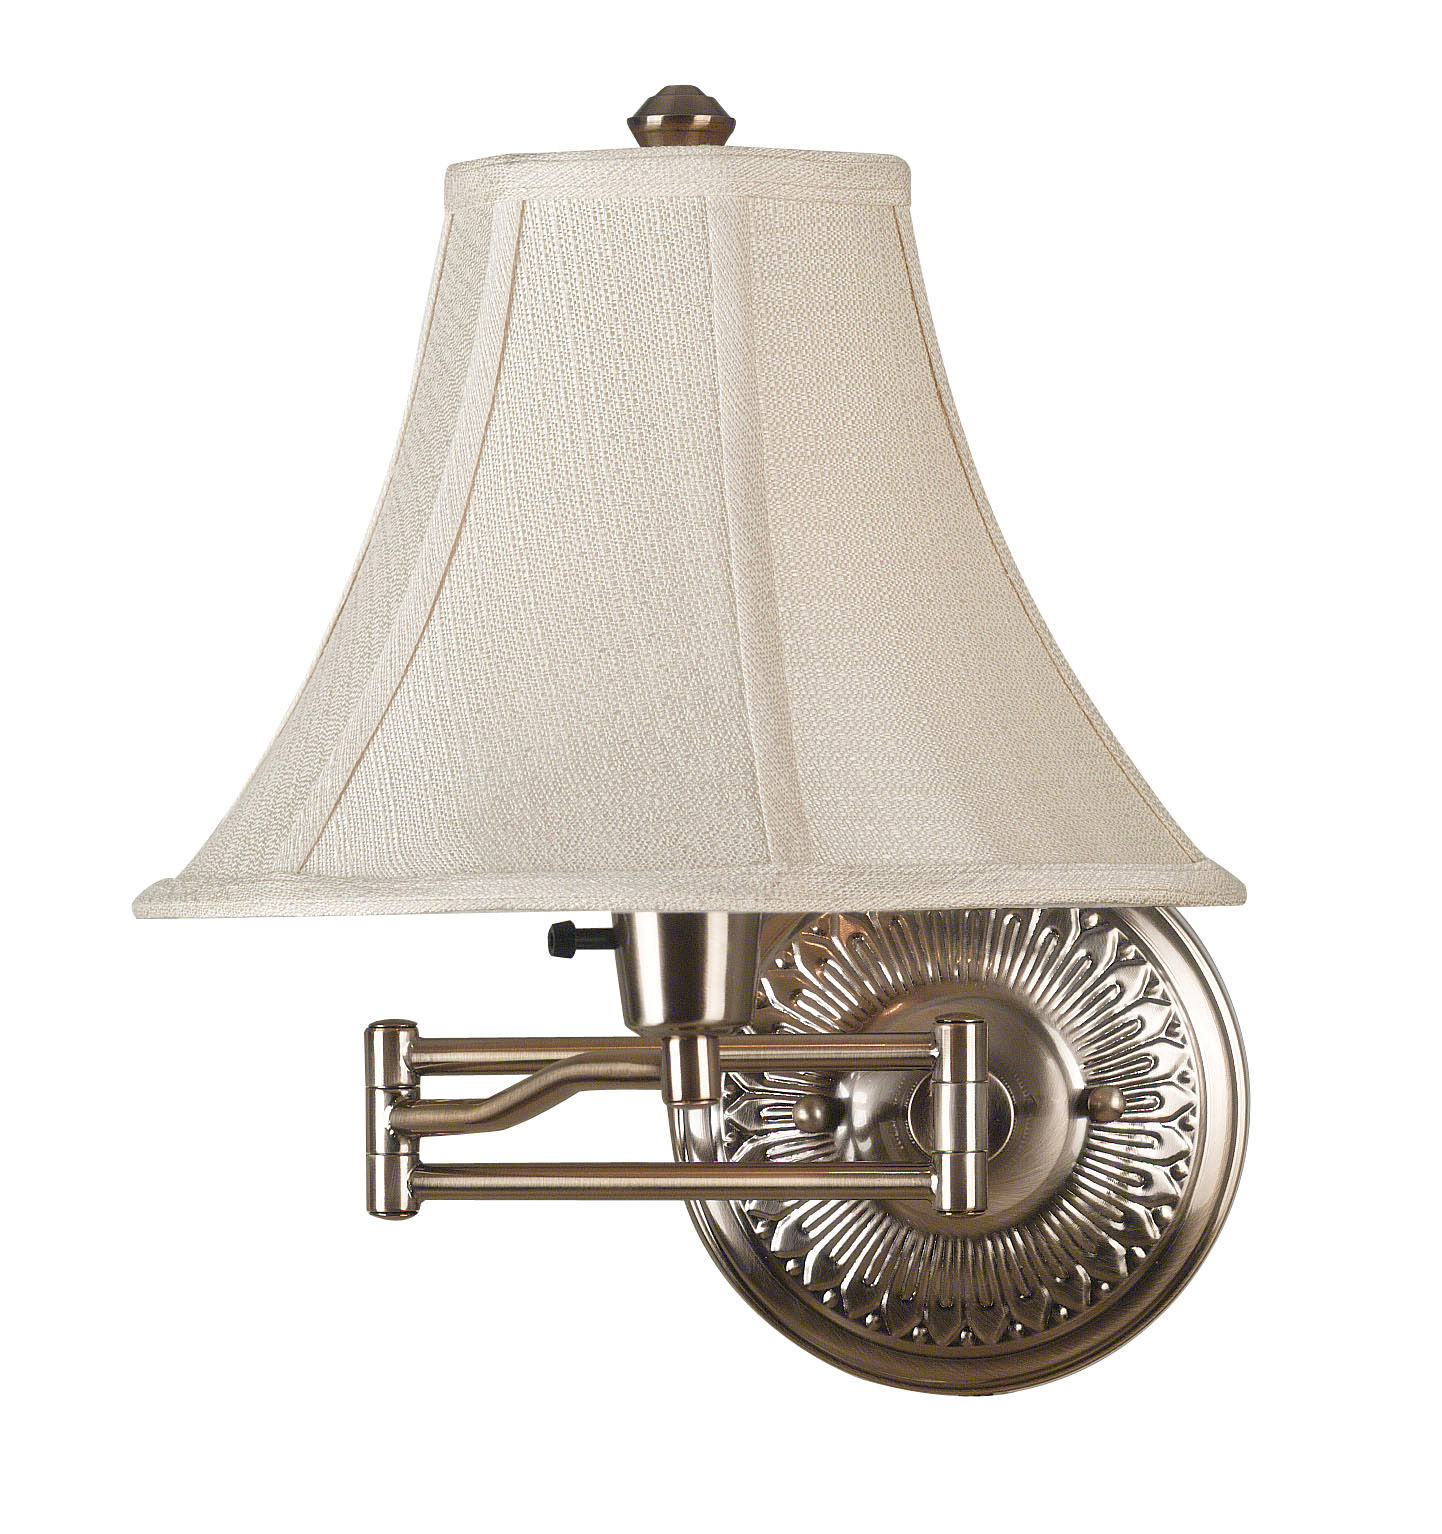 Wall Lamps For Home : Kenroy Home 21395BRBR Amherst Swing Arm Wall Lamp